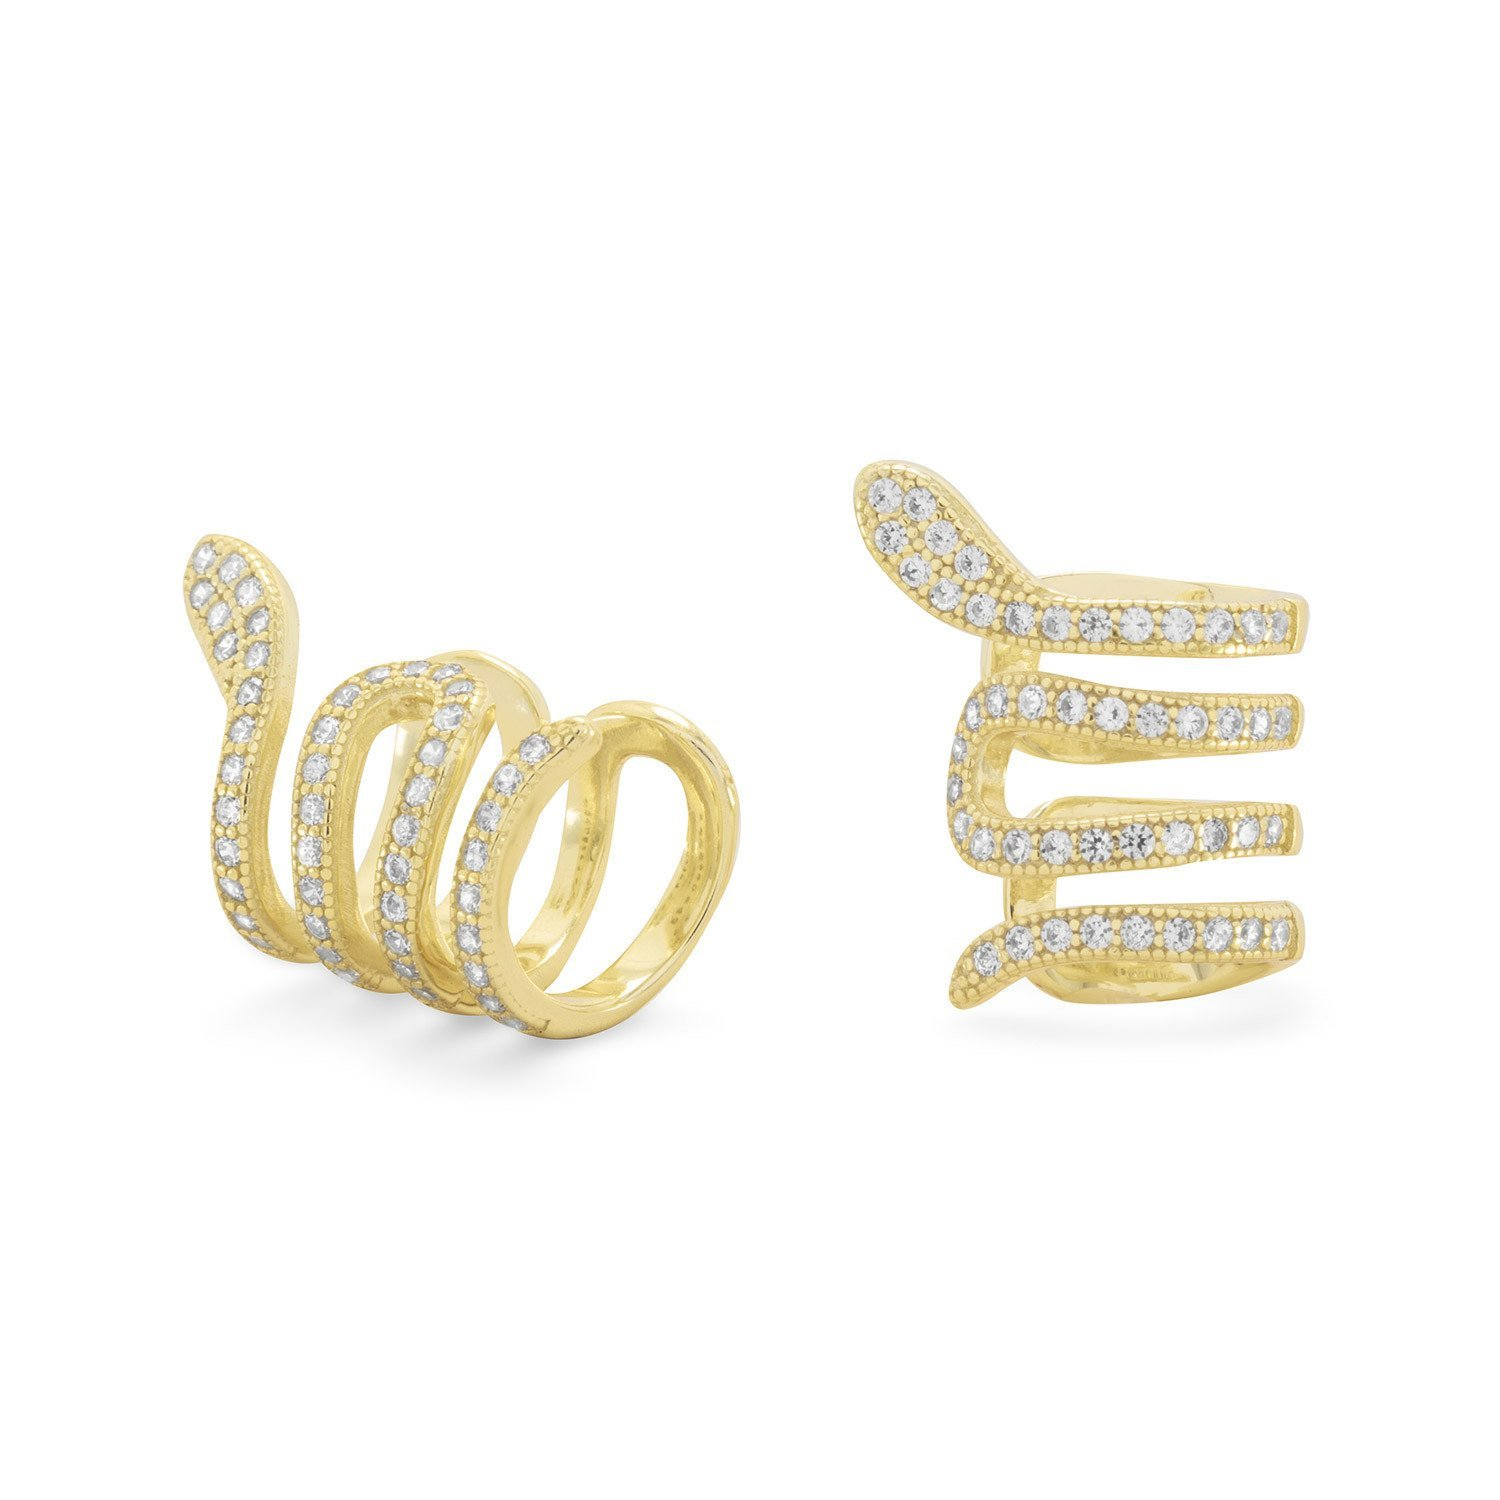 Bunnyberry 14 Karat Gold Plated Snake Ear Cuffs with Signity CZs